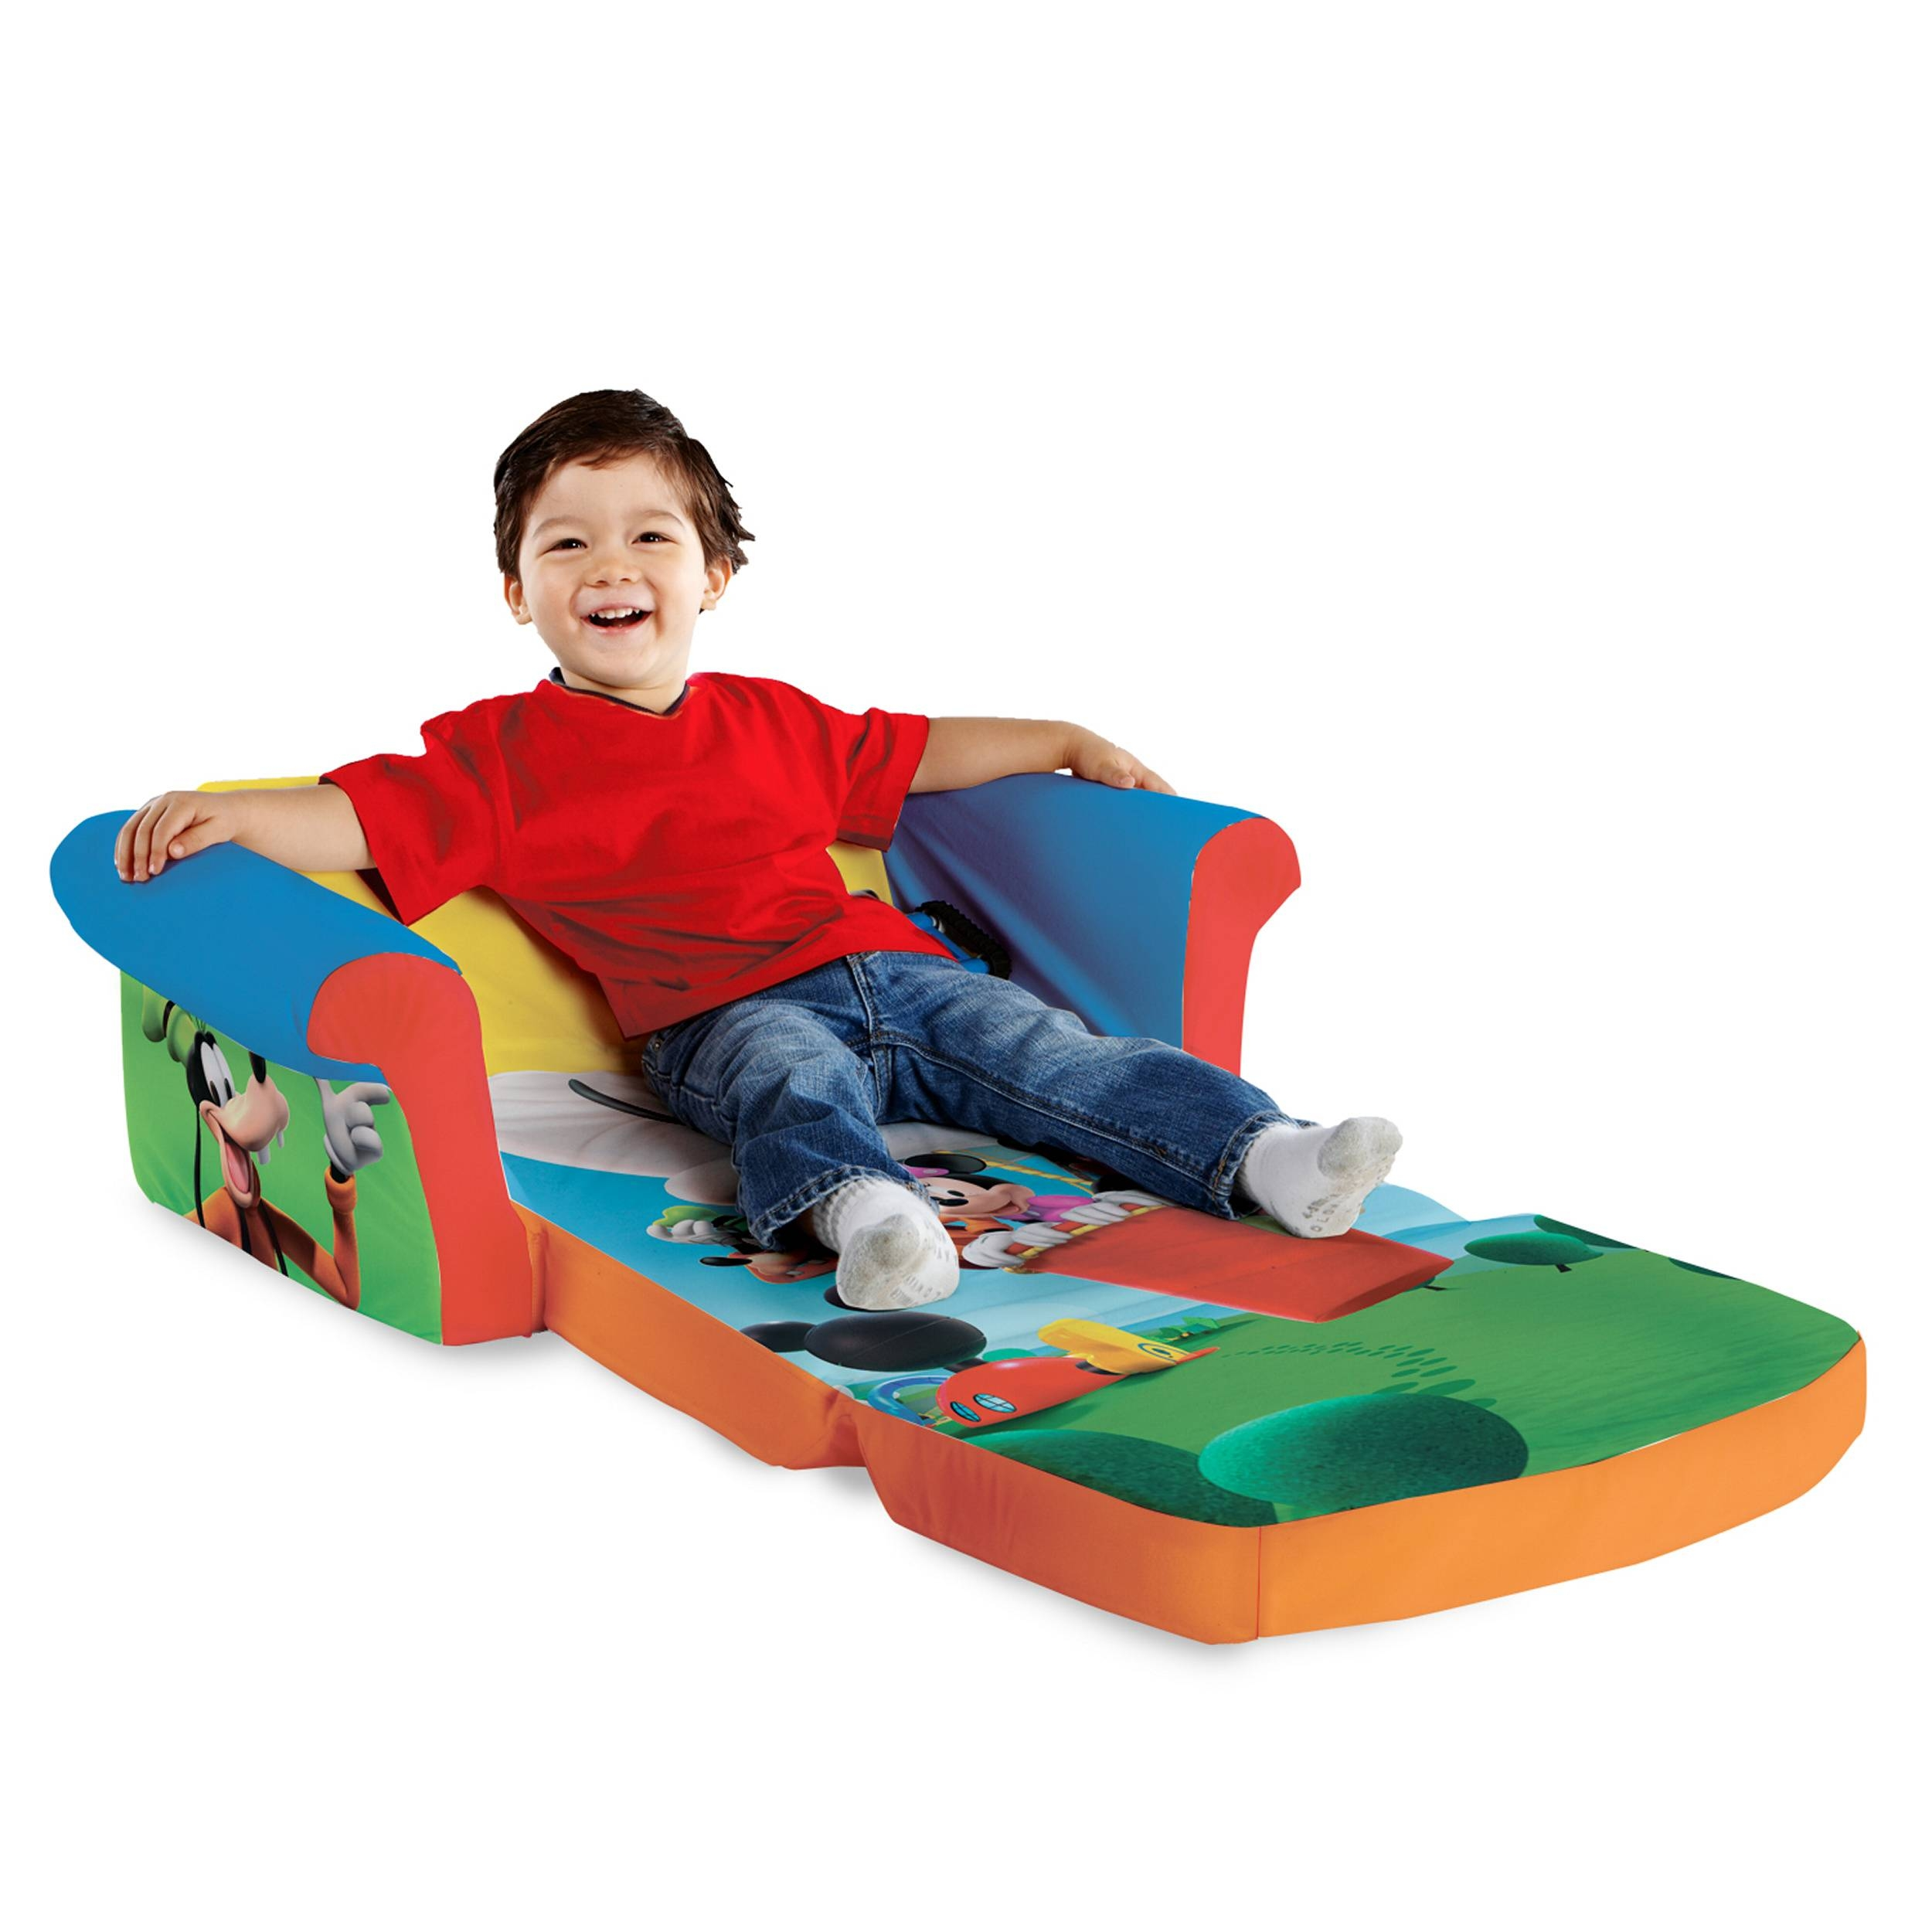 Marshmallow Furniture, Children's 2 In 1 Flip Open Foam Sofa for Mickey Mouse Clubhouse Couches (Image 4 of 15)